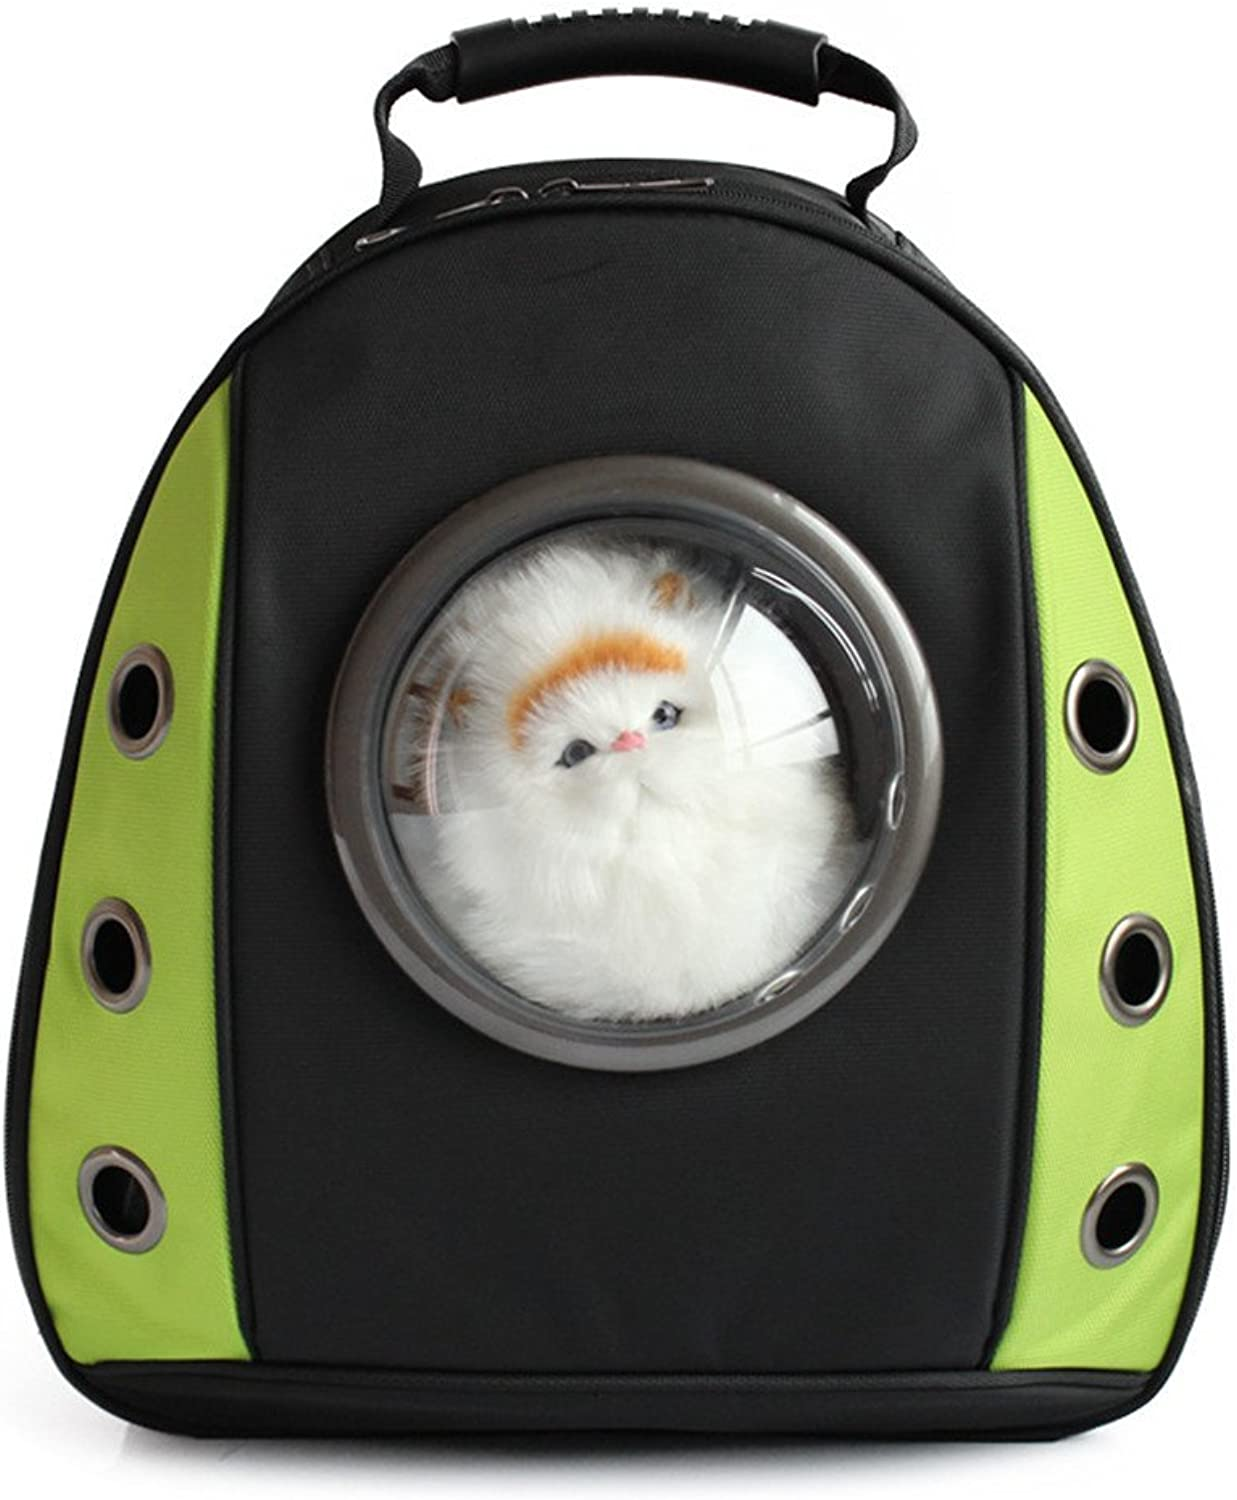 DESESHENME Pokemon Cat Dog Space Capsule Pet Cat Dog Backpack Window for Puppy Small Cat Dog Carrier transport Outdoor Travel Bag,Green29×23×42cm